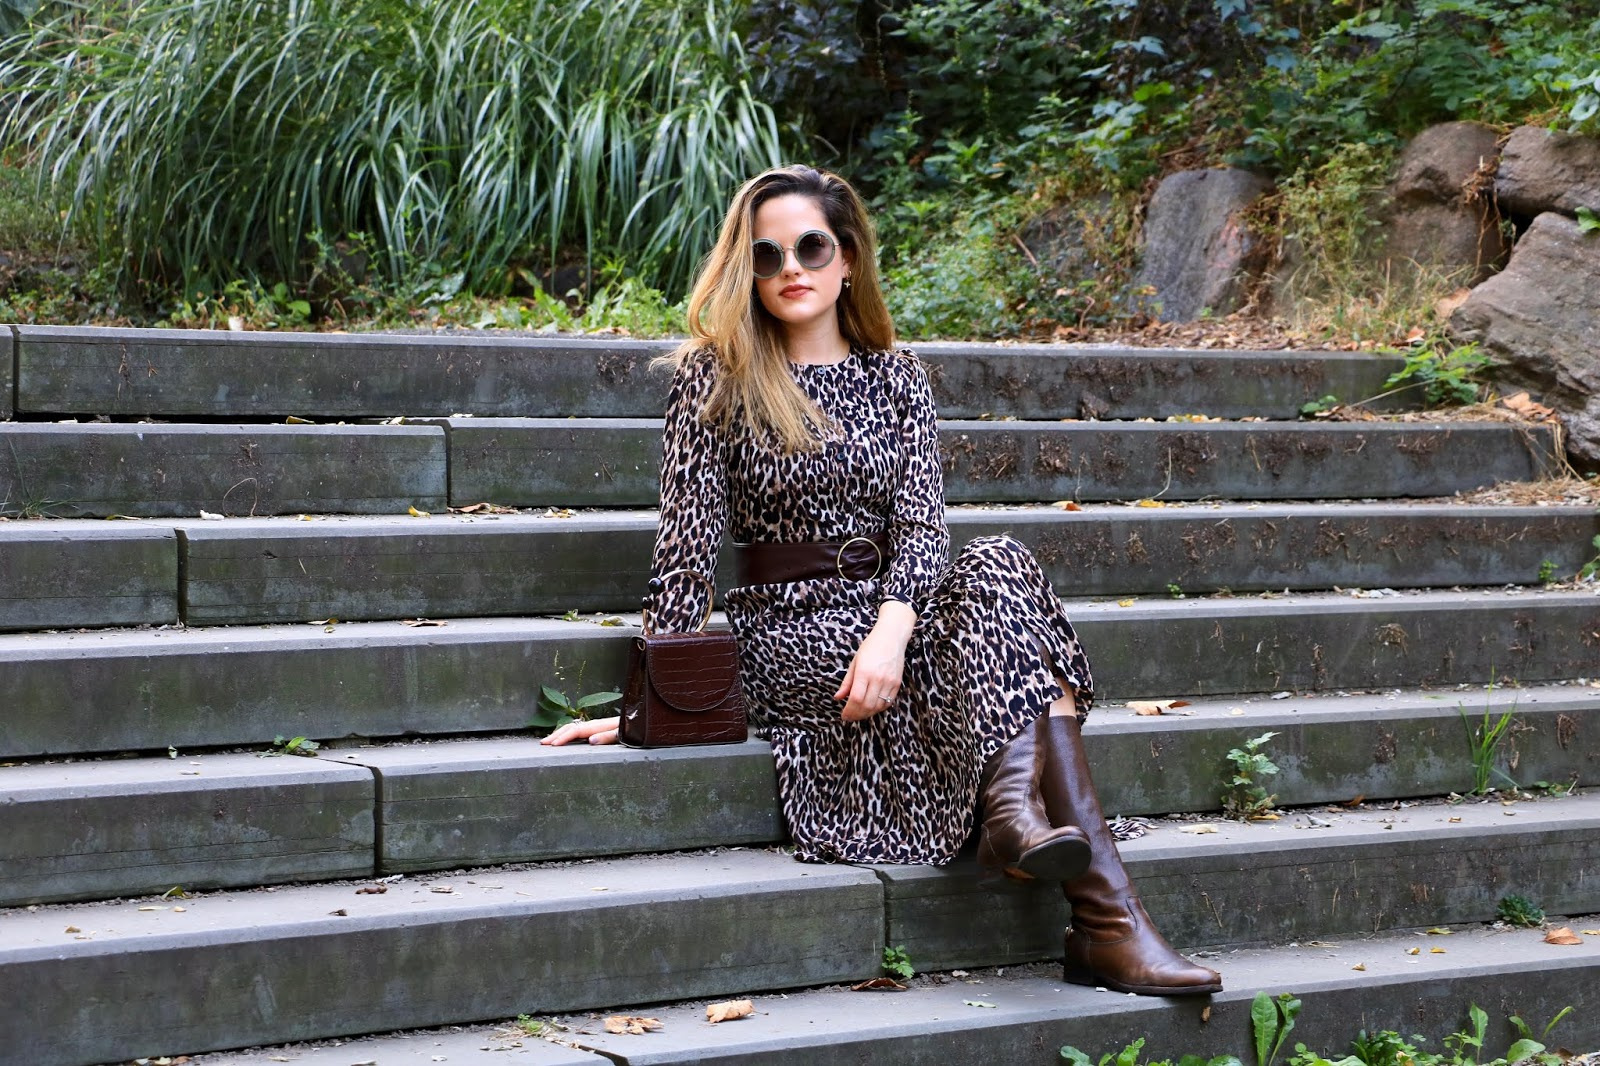 Nyc fashion blogger Kathleen Harper wearing an expensive-looking fall outfit.